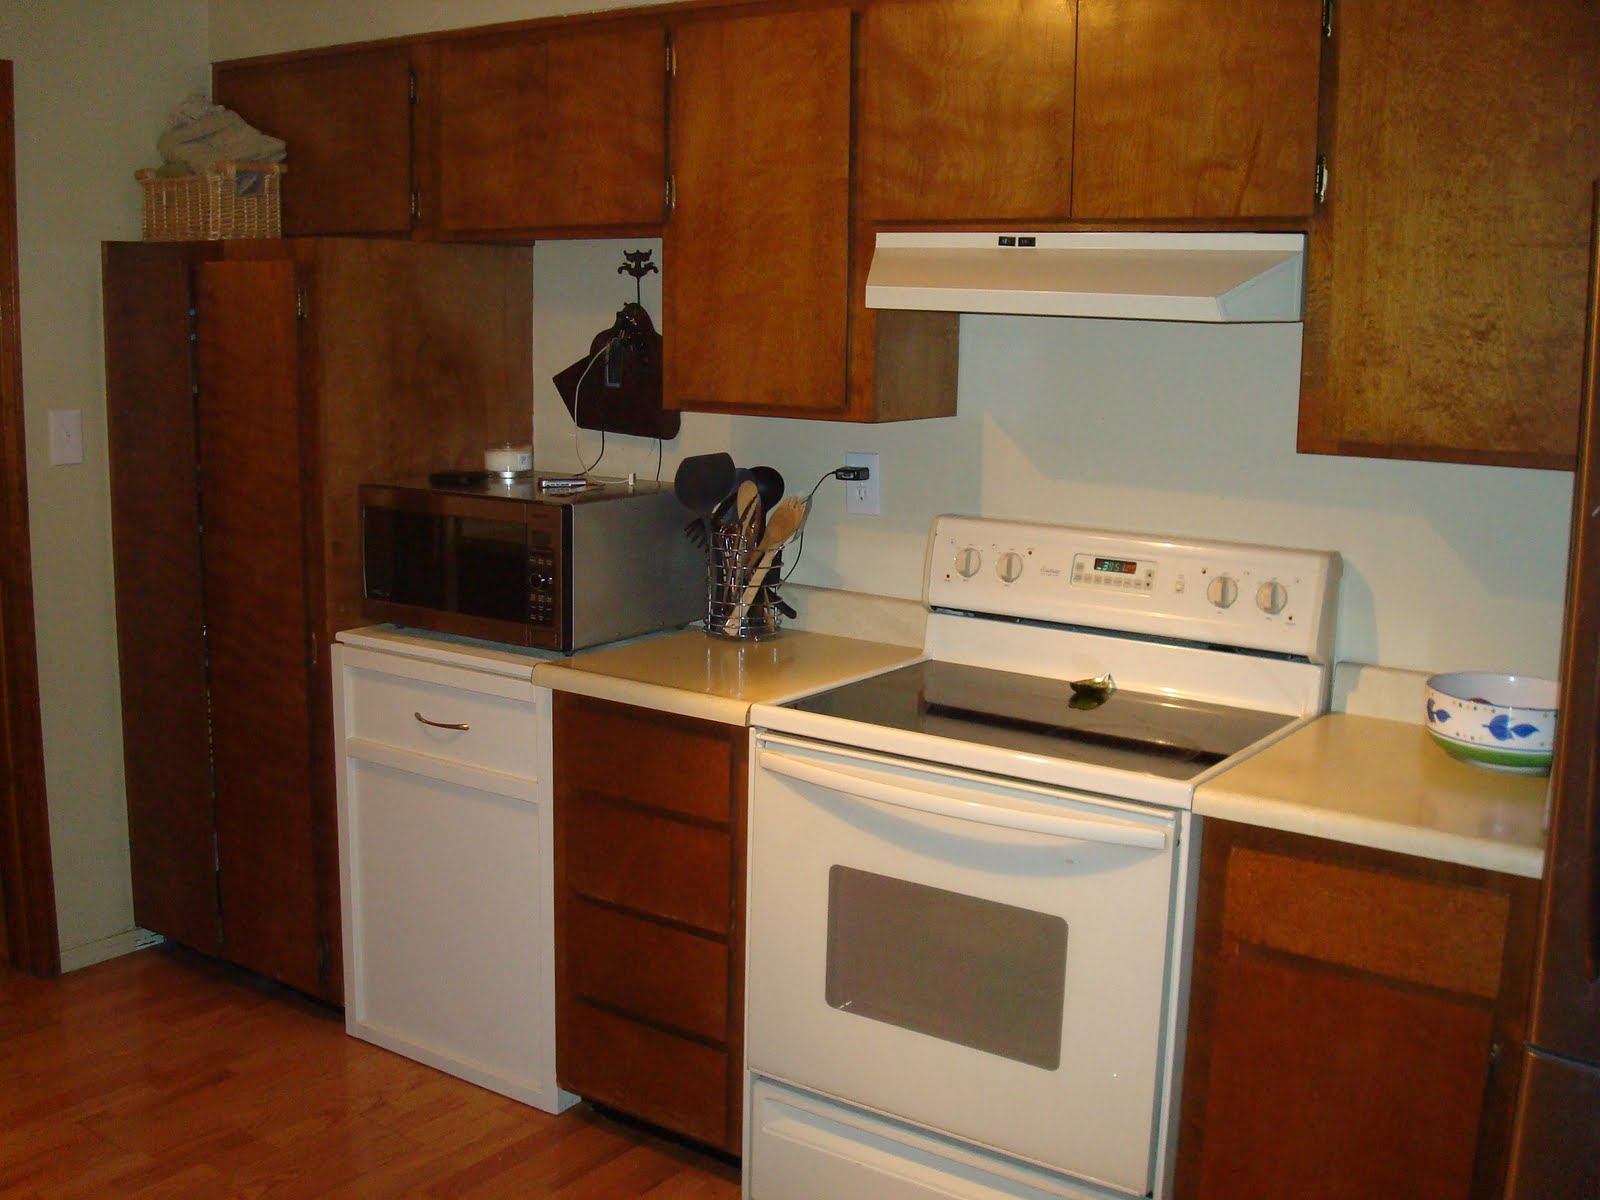 Budget Kitchen Remodel Commercial Equipment Just Me Low